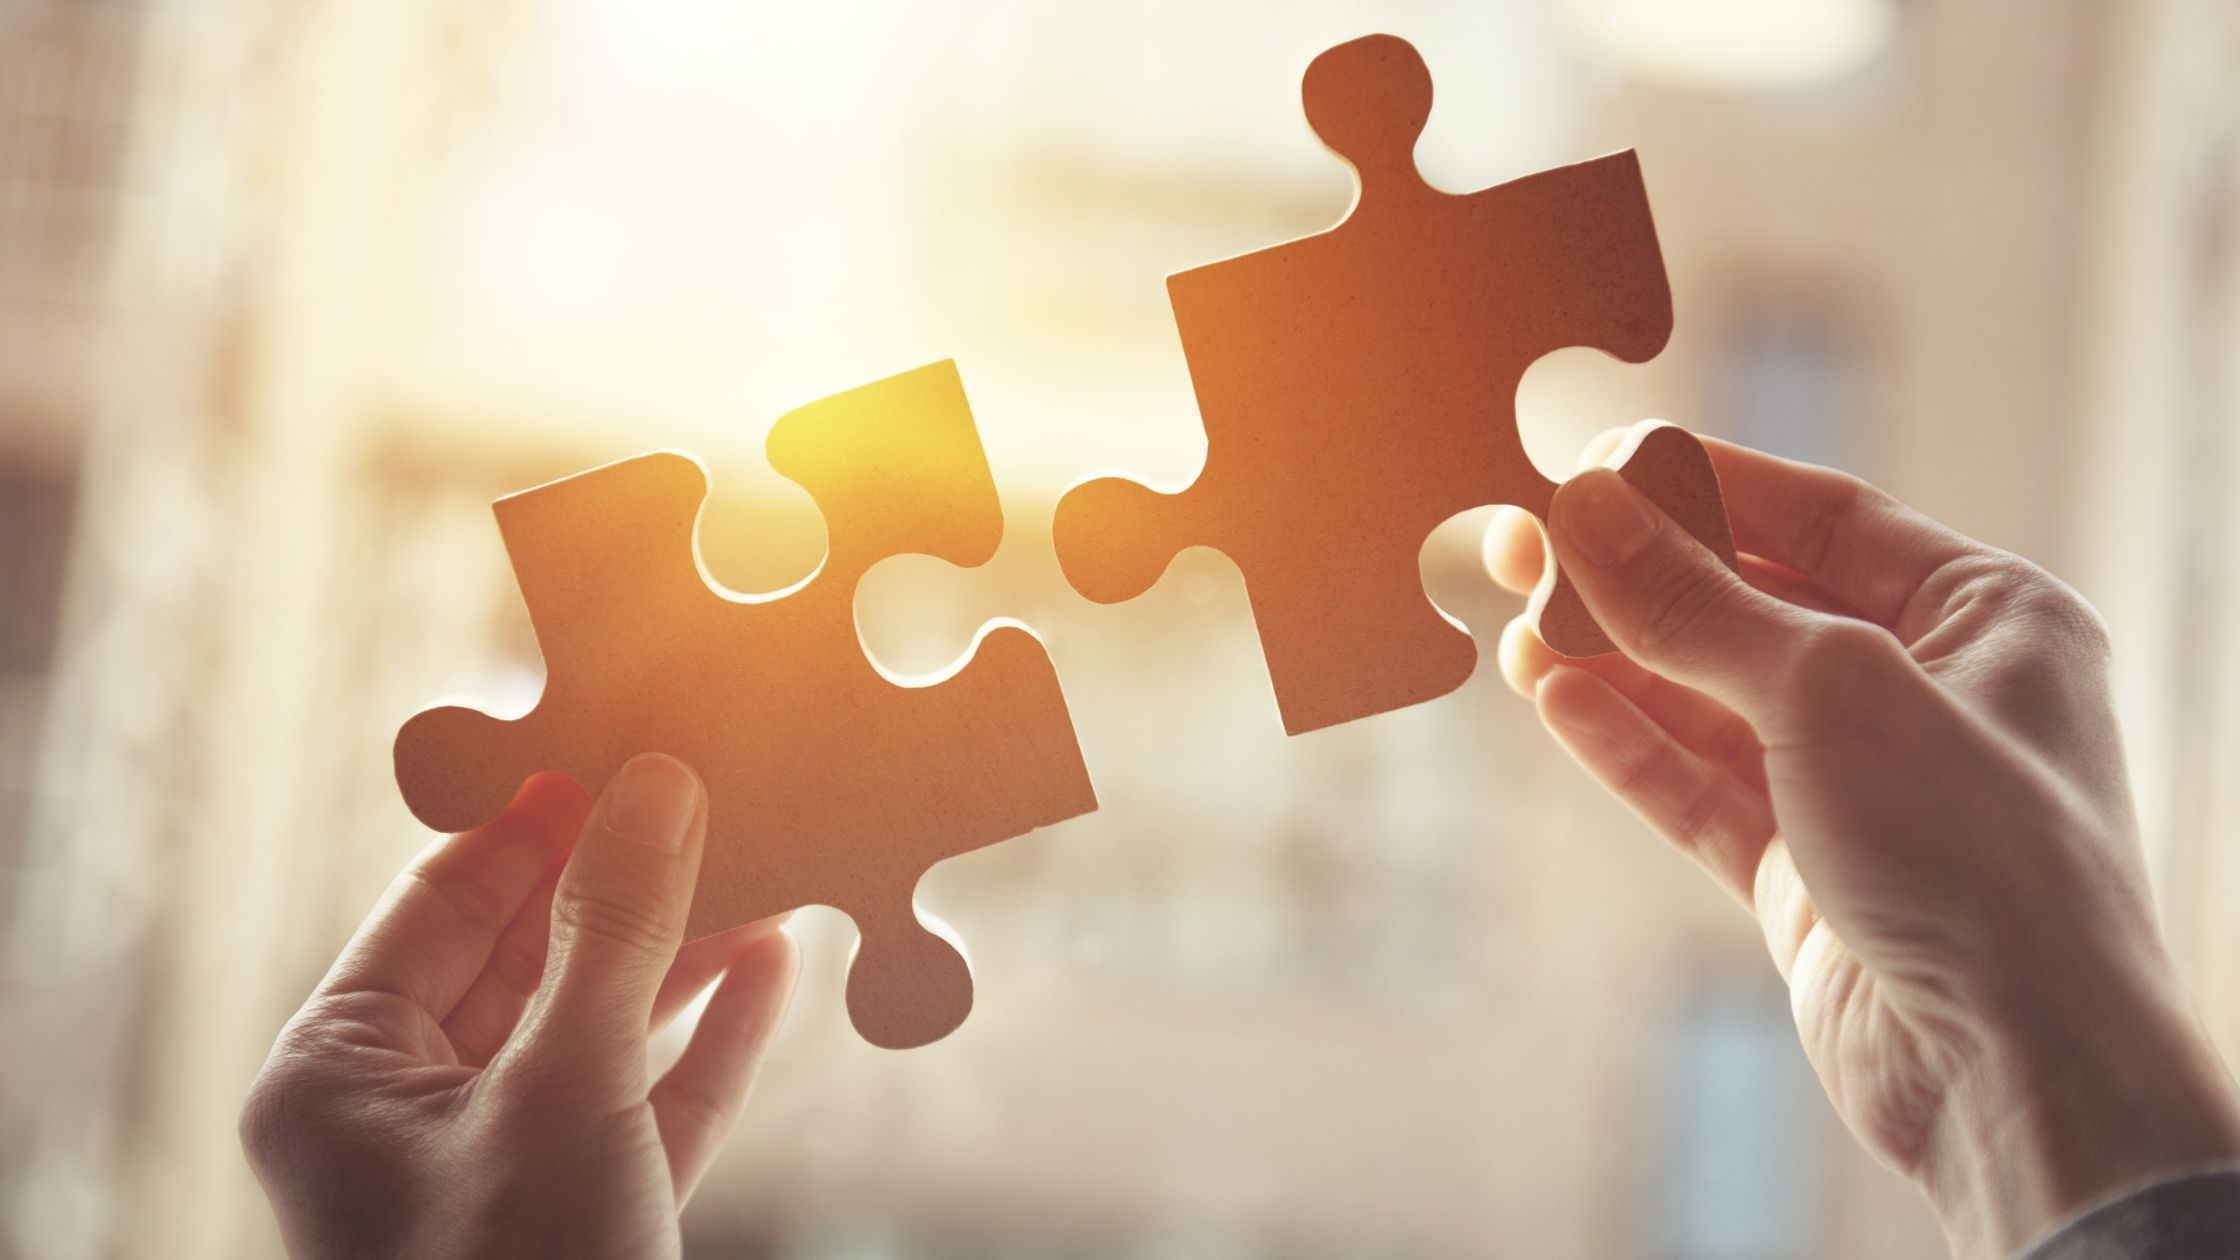 photo shows two hands holding a puzzle piece in each hand approaching the pieces without touching them against the sunlight with a burr background, this image is part of the article named 'what are personal development challenges and how to overcome them'